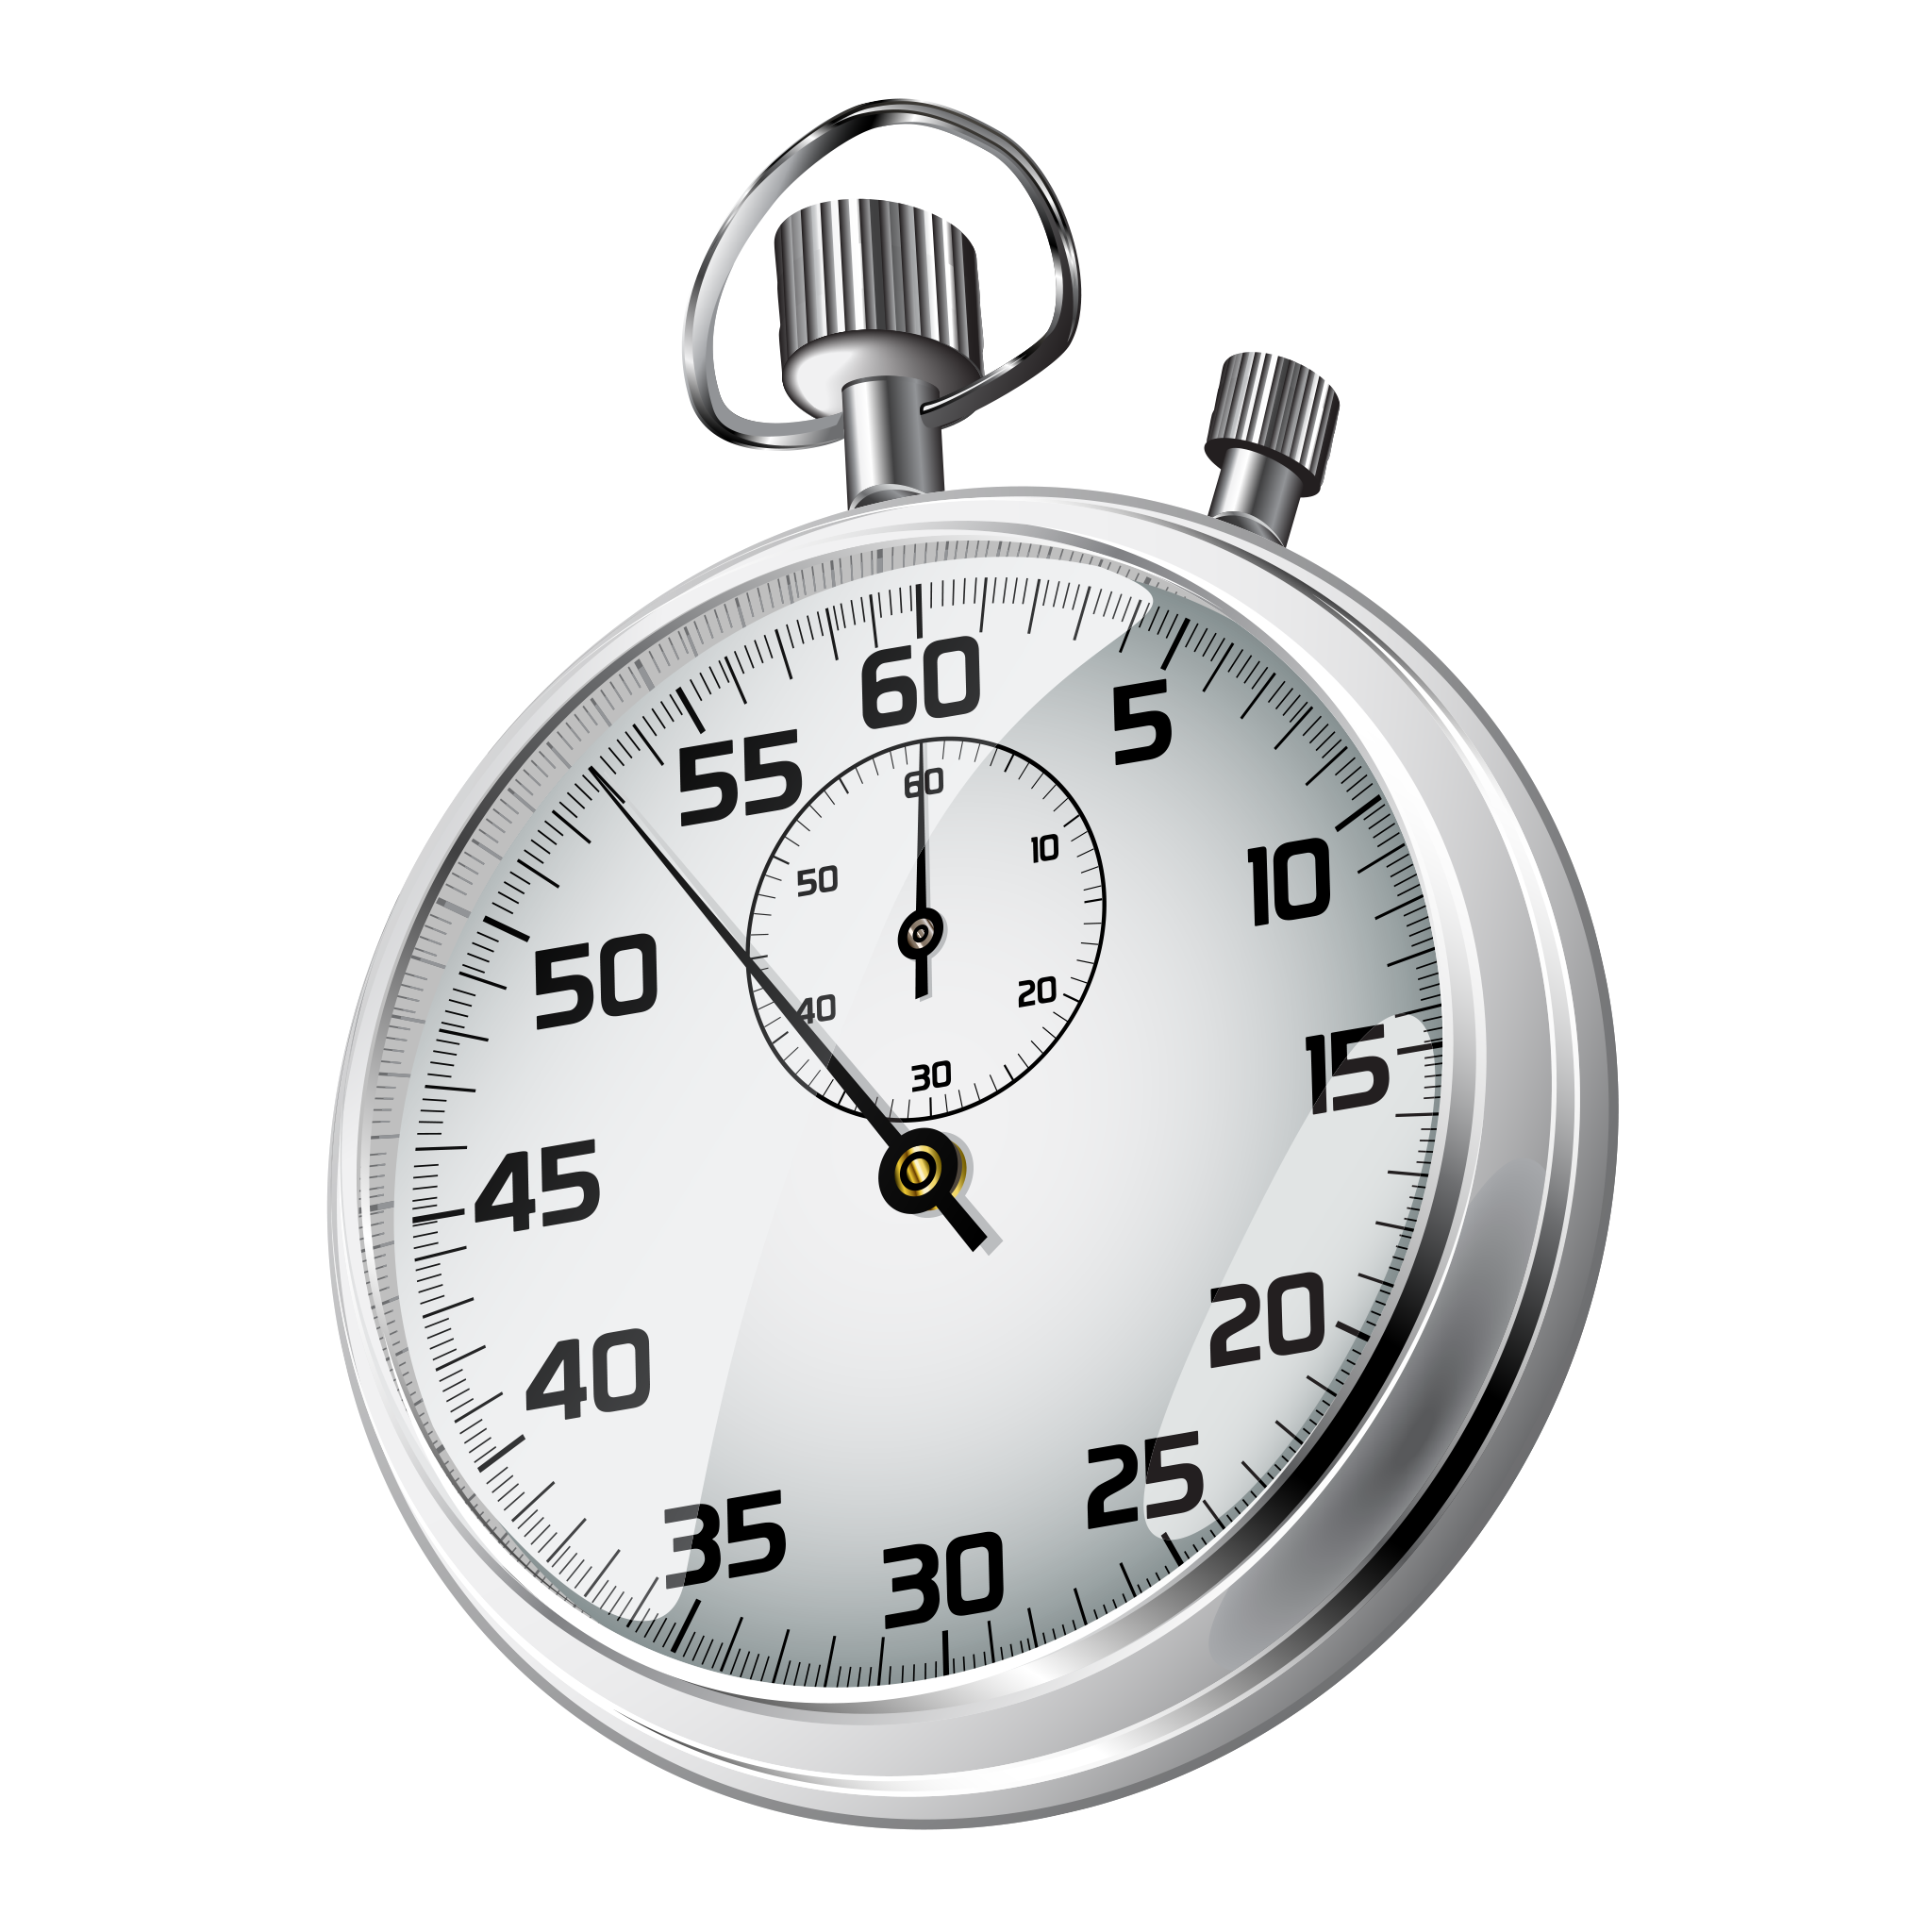 Realistic stopwatch on background. Transparent timer graphic library